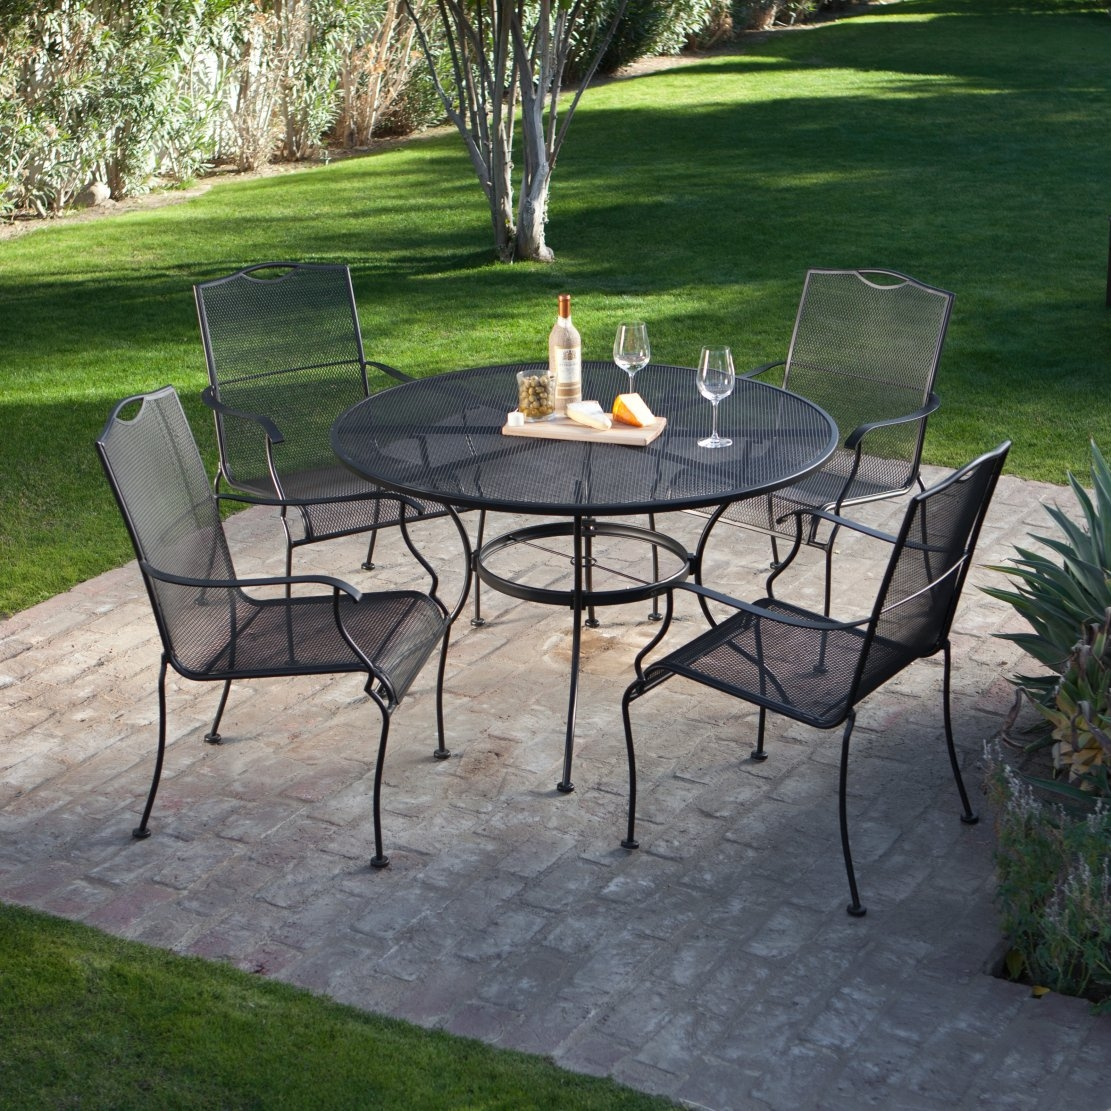 5-Piece Wrought Iron Patio Furniture Dining Set - Seats 4 |  Traveller Location